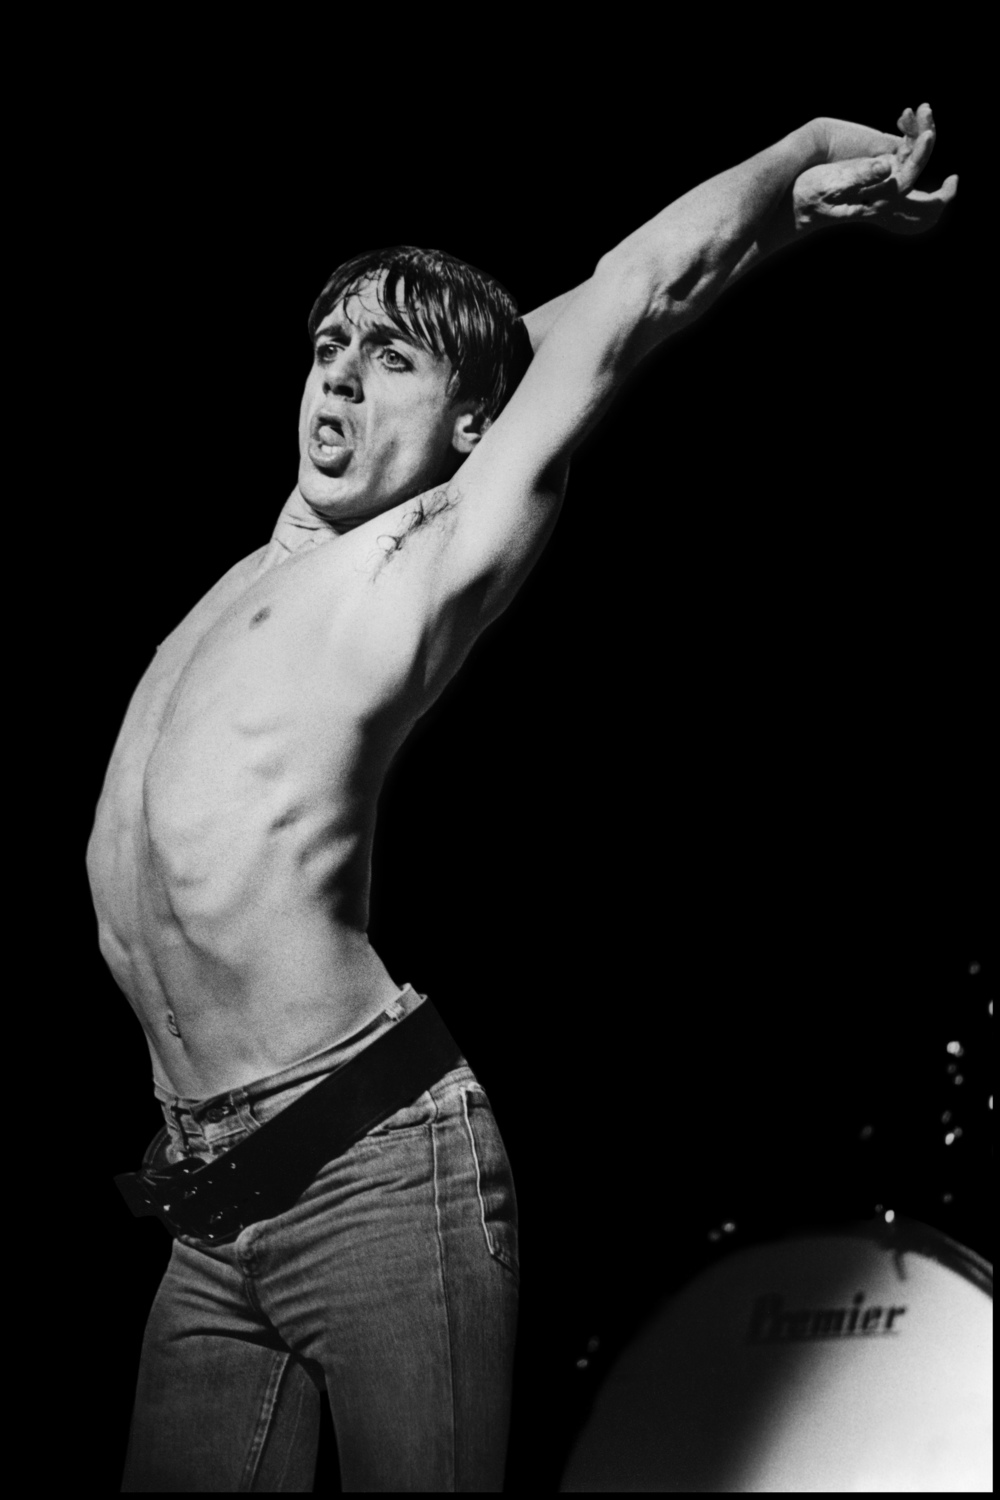 Iggy Pop - Manchester 1977  When Iggy Pop released The Idiot in 1977 he did a British Tour featuring the album's producer, David Bowie, on keyboards. This meant that security was very tight, and photographers were not invited.  This did not stop me going to the first show at Friars in Aylesbury. In an attempt to avoid the security personnel I ended up in the roof looking straight down at Bowie, but the lights were terrible and I knew I needed to try again.  So Tony Parsons and I went to Manchester a couple of days later. This time security was even tighter and I was unable to get my cameras into the show. But the next night, in Birmingham, I strapped the lenses to my ankles and hid the cameras under my clothing, having seen the show twice I knew exactly when Iggy would throw a few shapes and decided to limit myself to those numbers.  This time I did much better, I got quite a few good photos, including this one which pretty much sums up Iggy, having got what I needed I kept my cameras hidden for the rest of the show, I was not going to take a chance that I would get caught, and luckily I didn't.